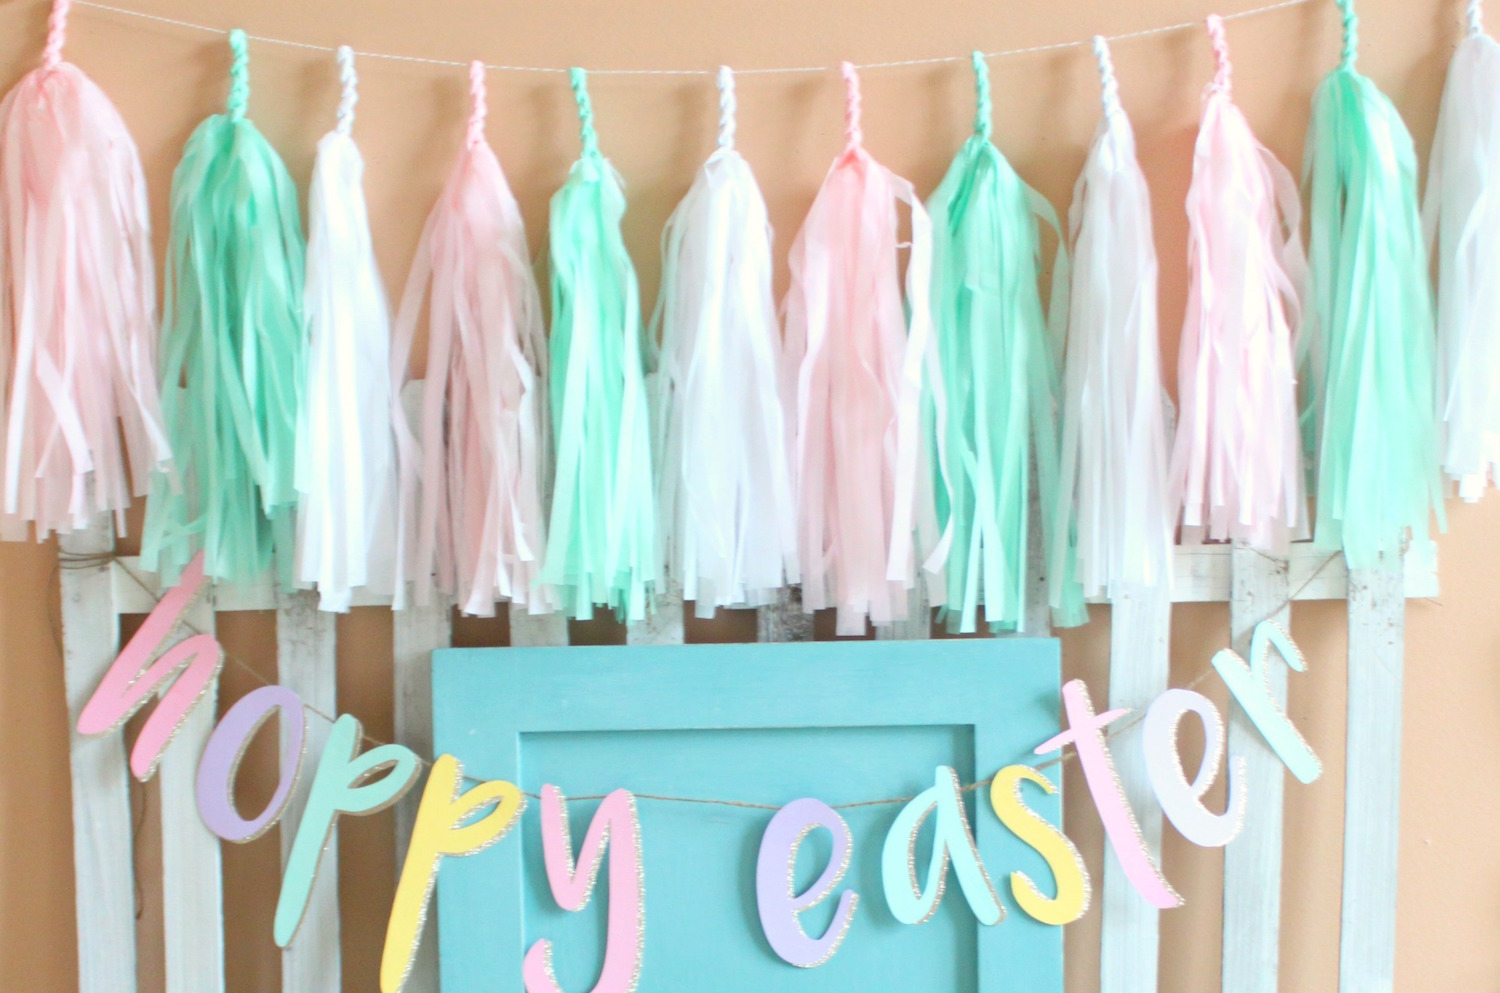 Tassel Garland in the perfect spring colors for bridal shower decor — Click to see 37 Creative DIY Wedding Ideas for Spring — as seen on www.BrendasWeddingBlog.com